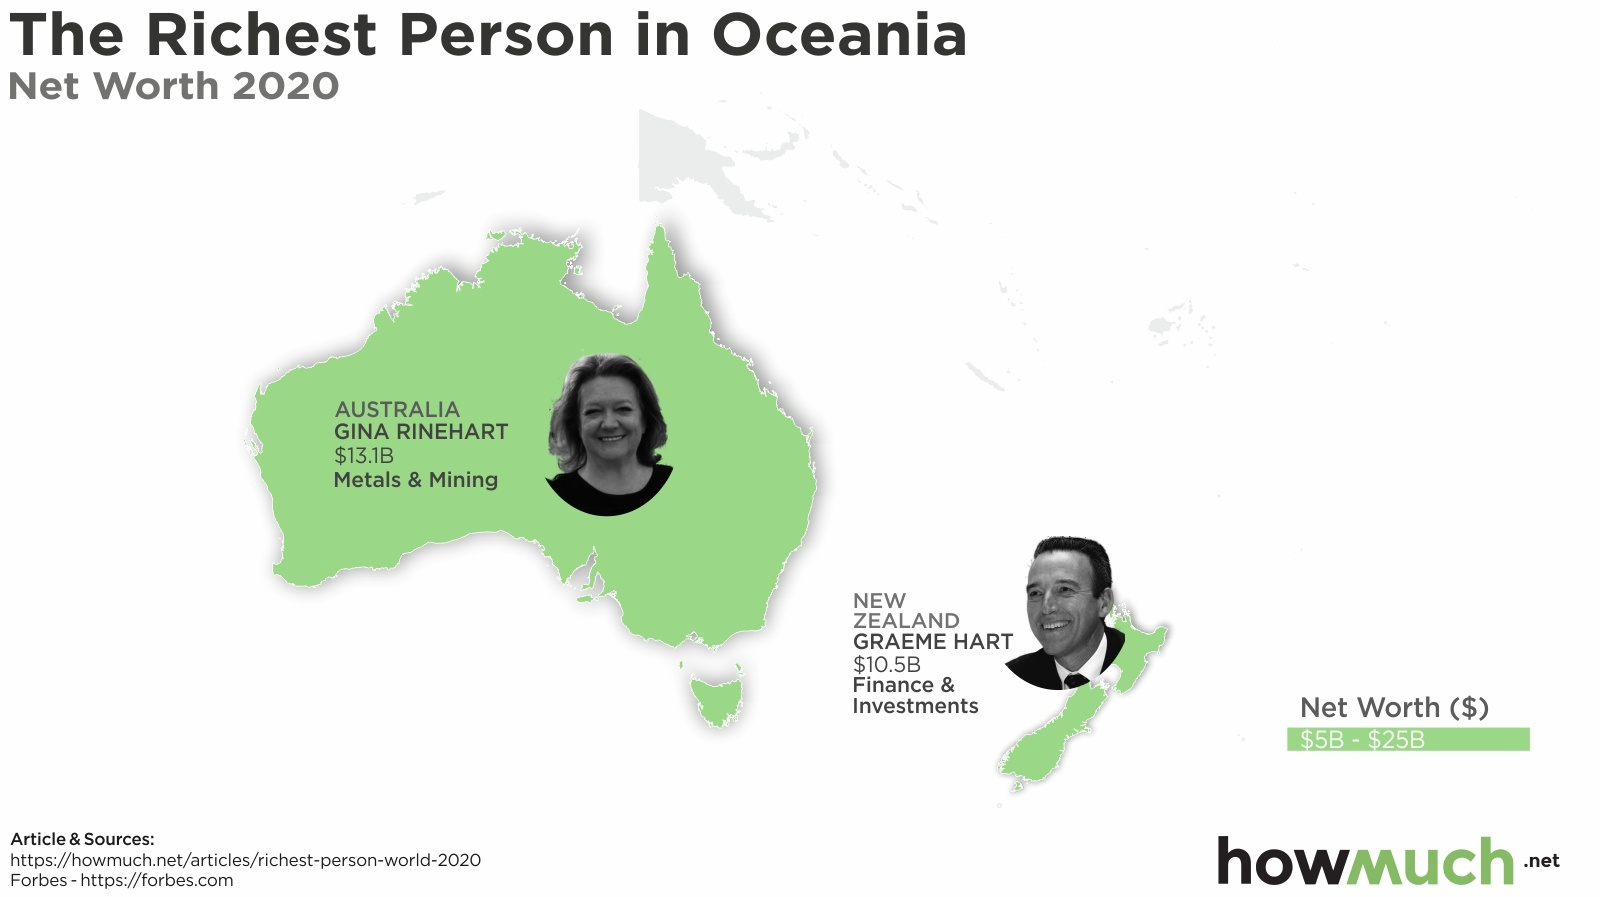 richest person in oceania